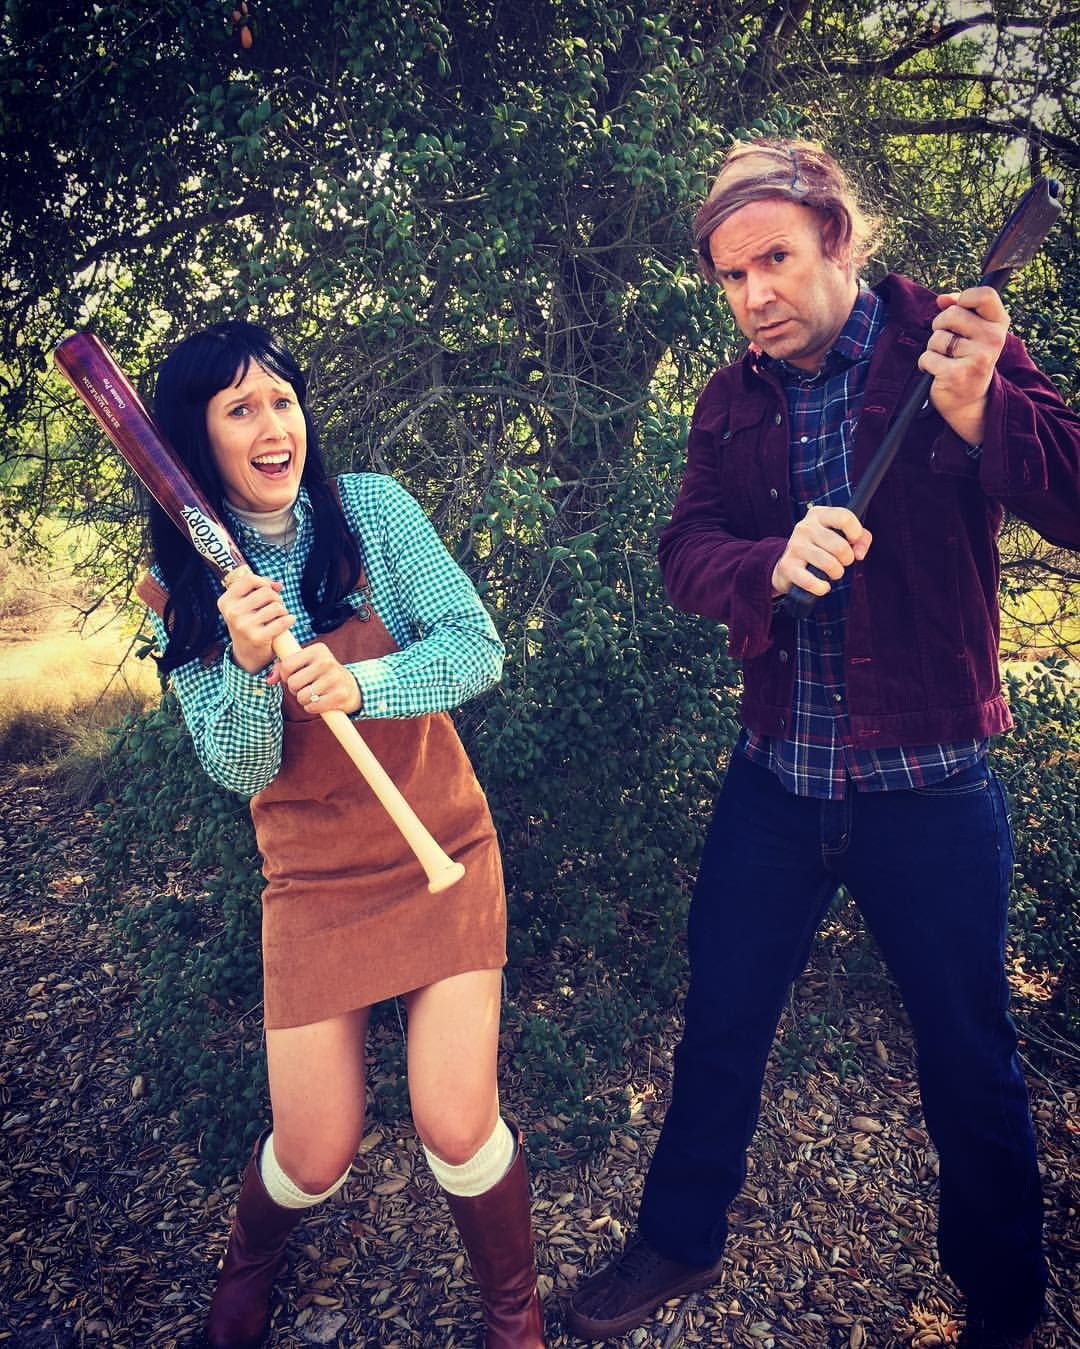 Torrance Family Jack And Wendy Torrance The Shining Halloween